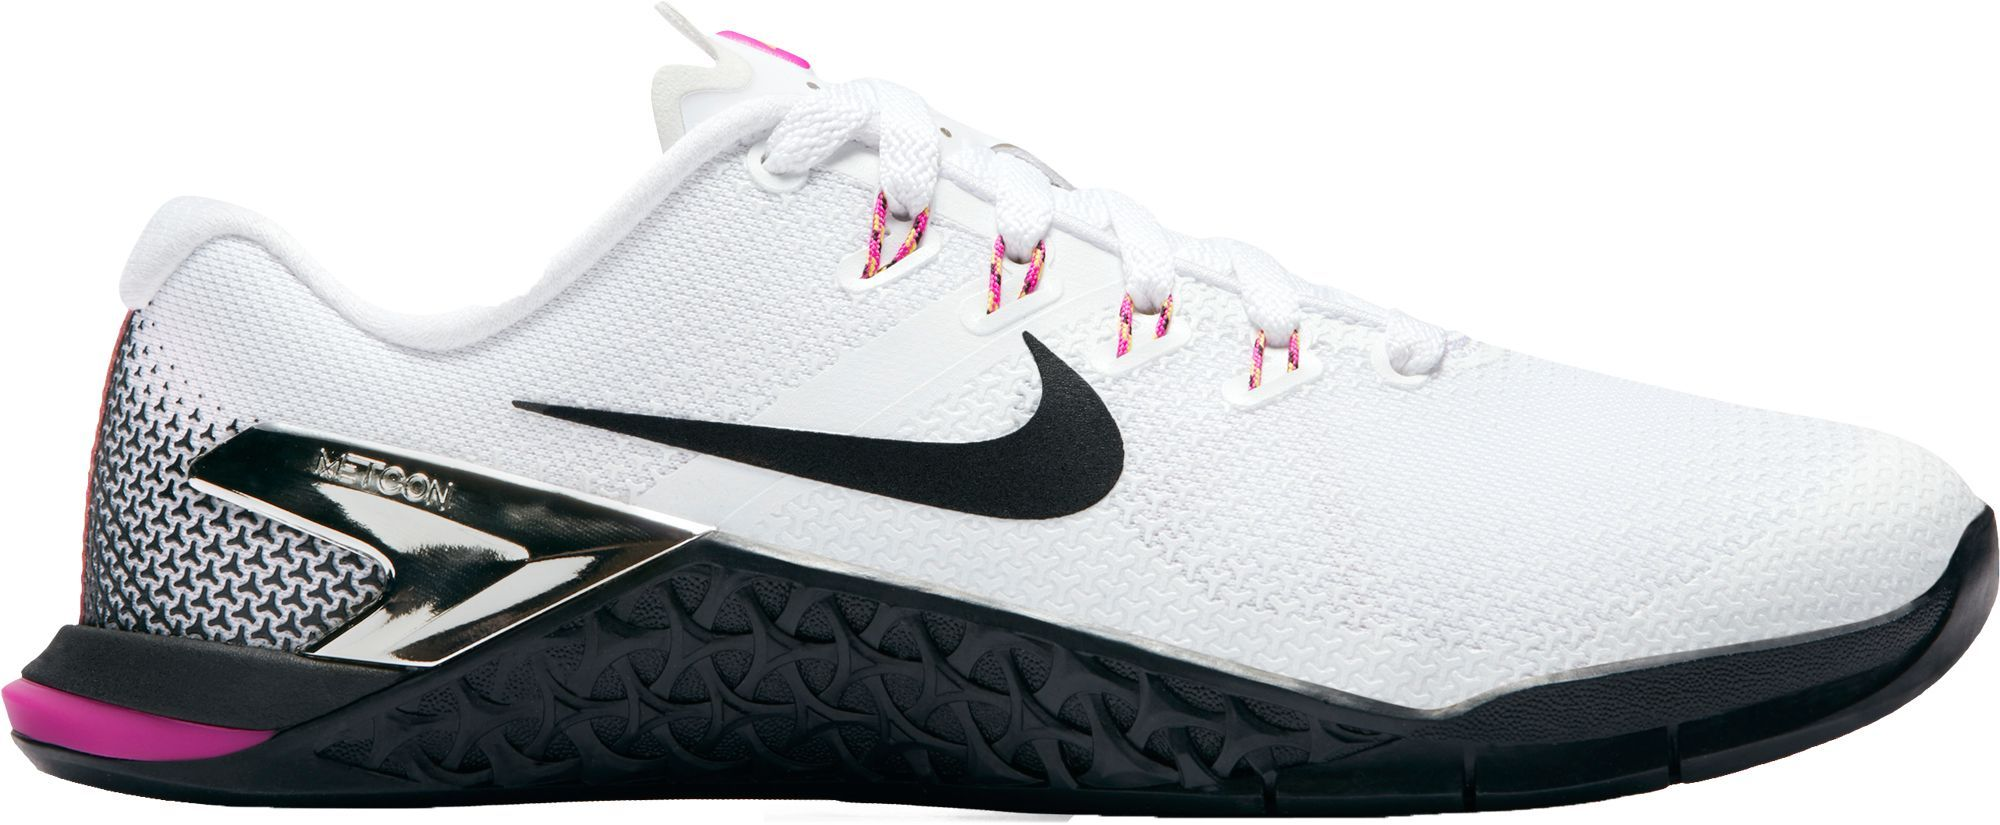 the latest a6c7f e8104 Nike Women's Metcon 4 Training Shoes in 2019   Products ...